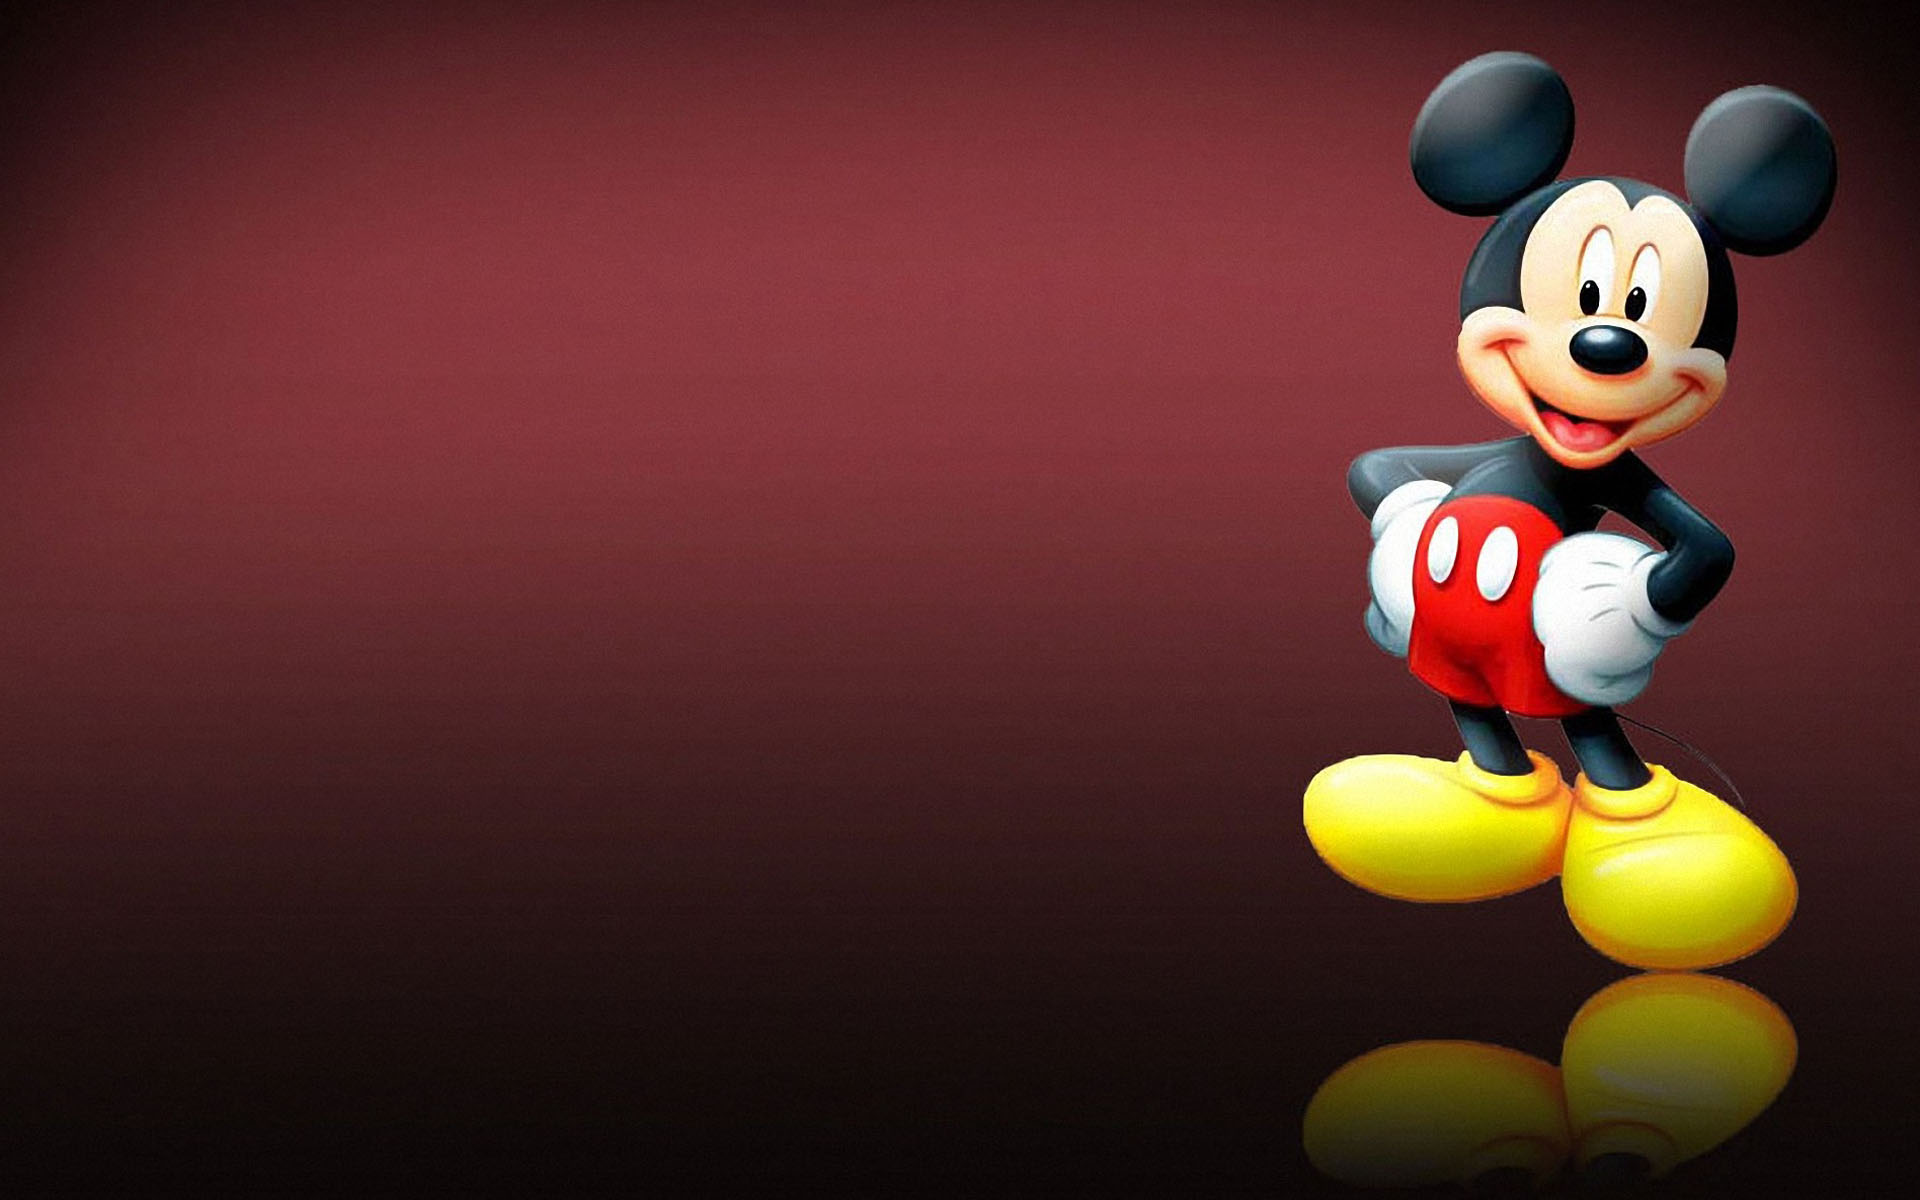 fondos de mickey mouse  wallpapers mickey mouse hd gratis